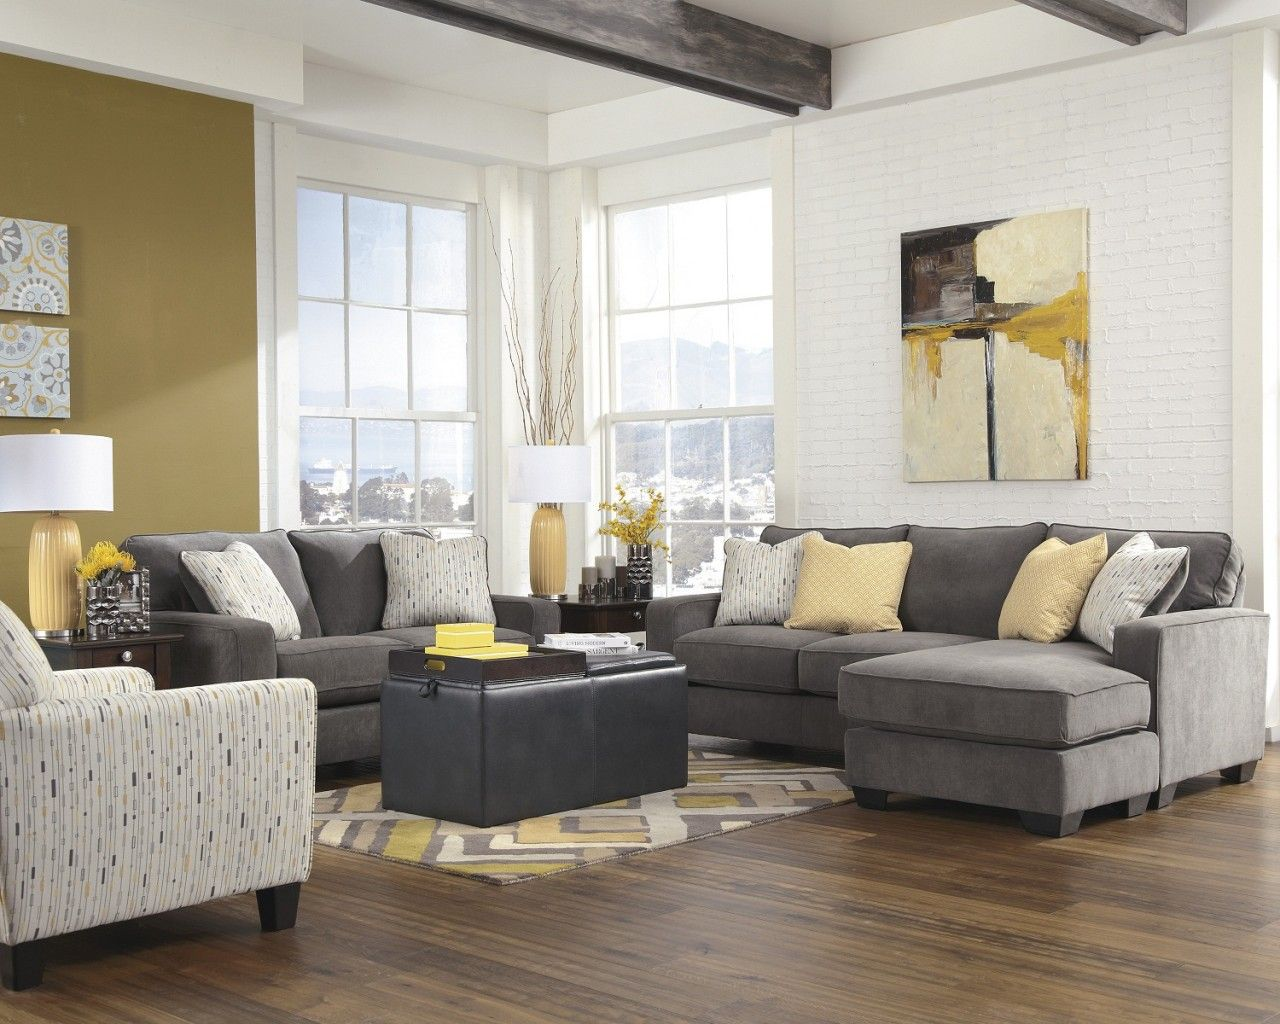 2-Piece Hodan Sofa Chaise Sectional Set in Marble   Marbles ...